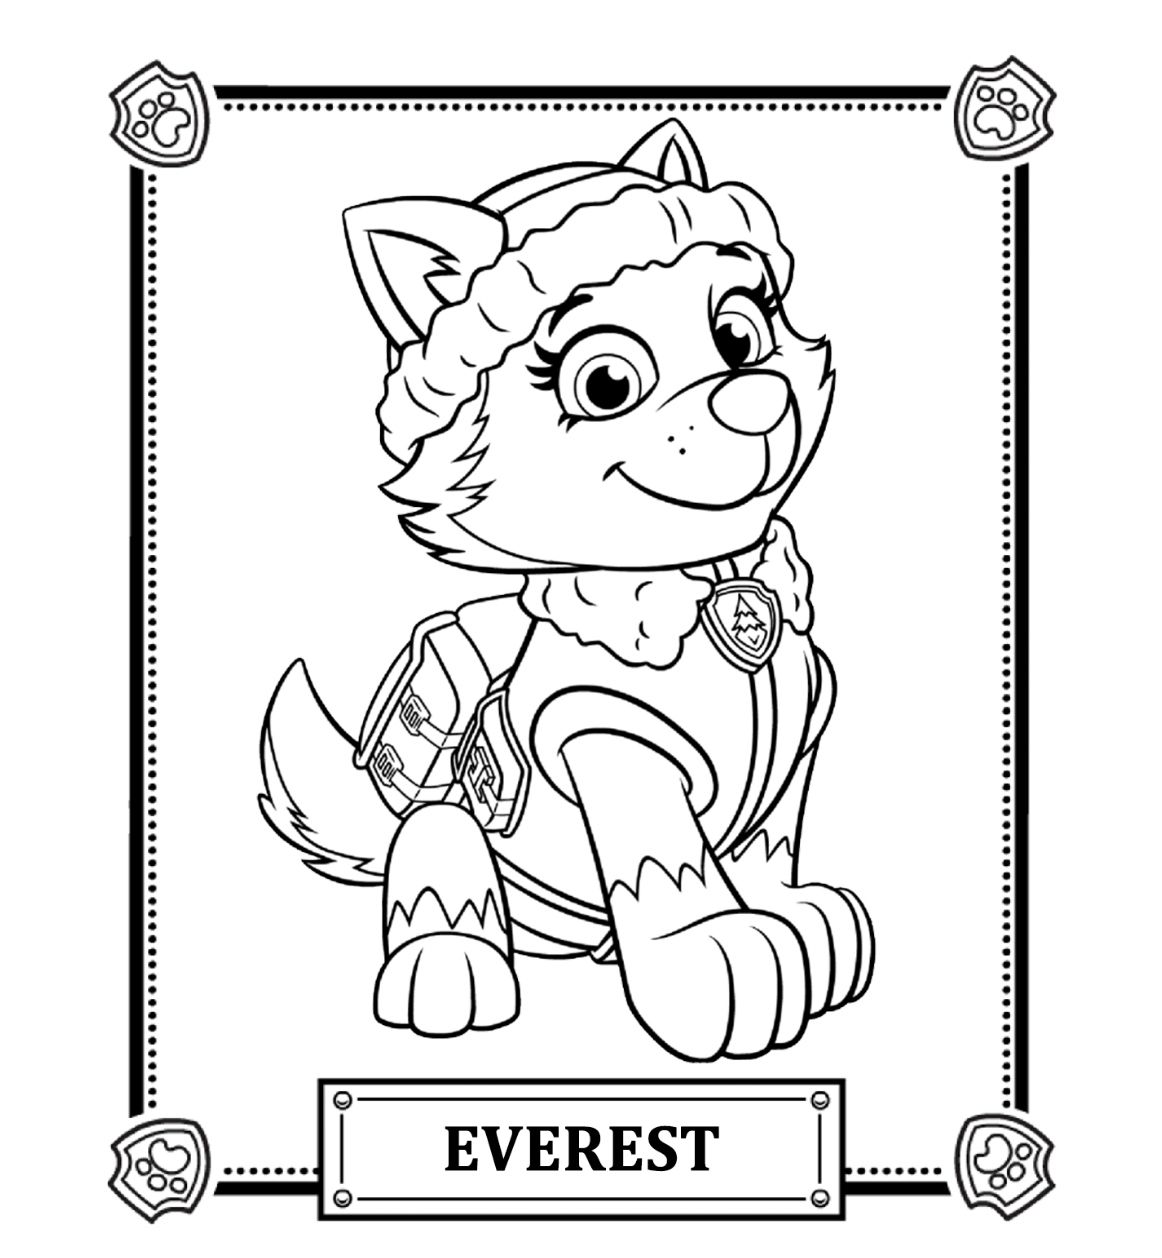 1000+ images about Coloring Pages on Pinterest